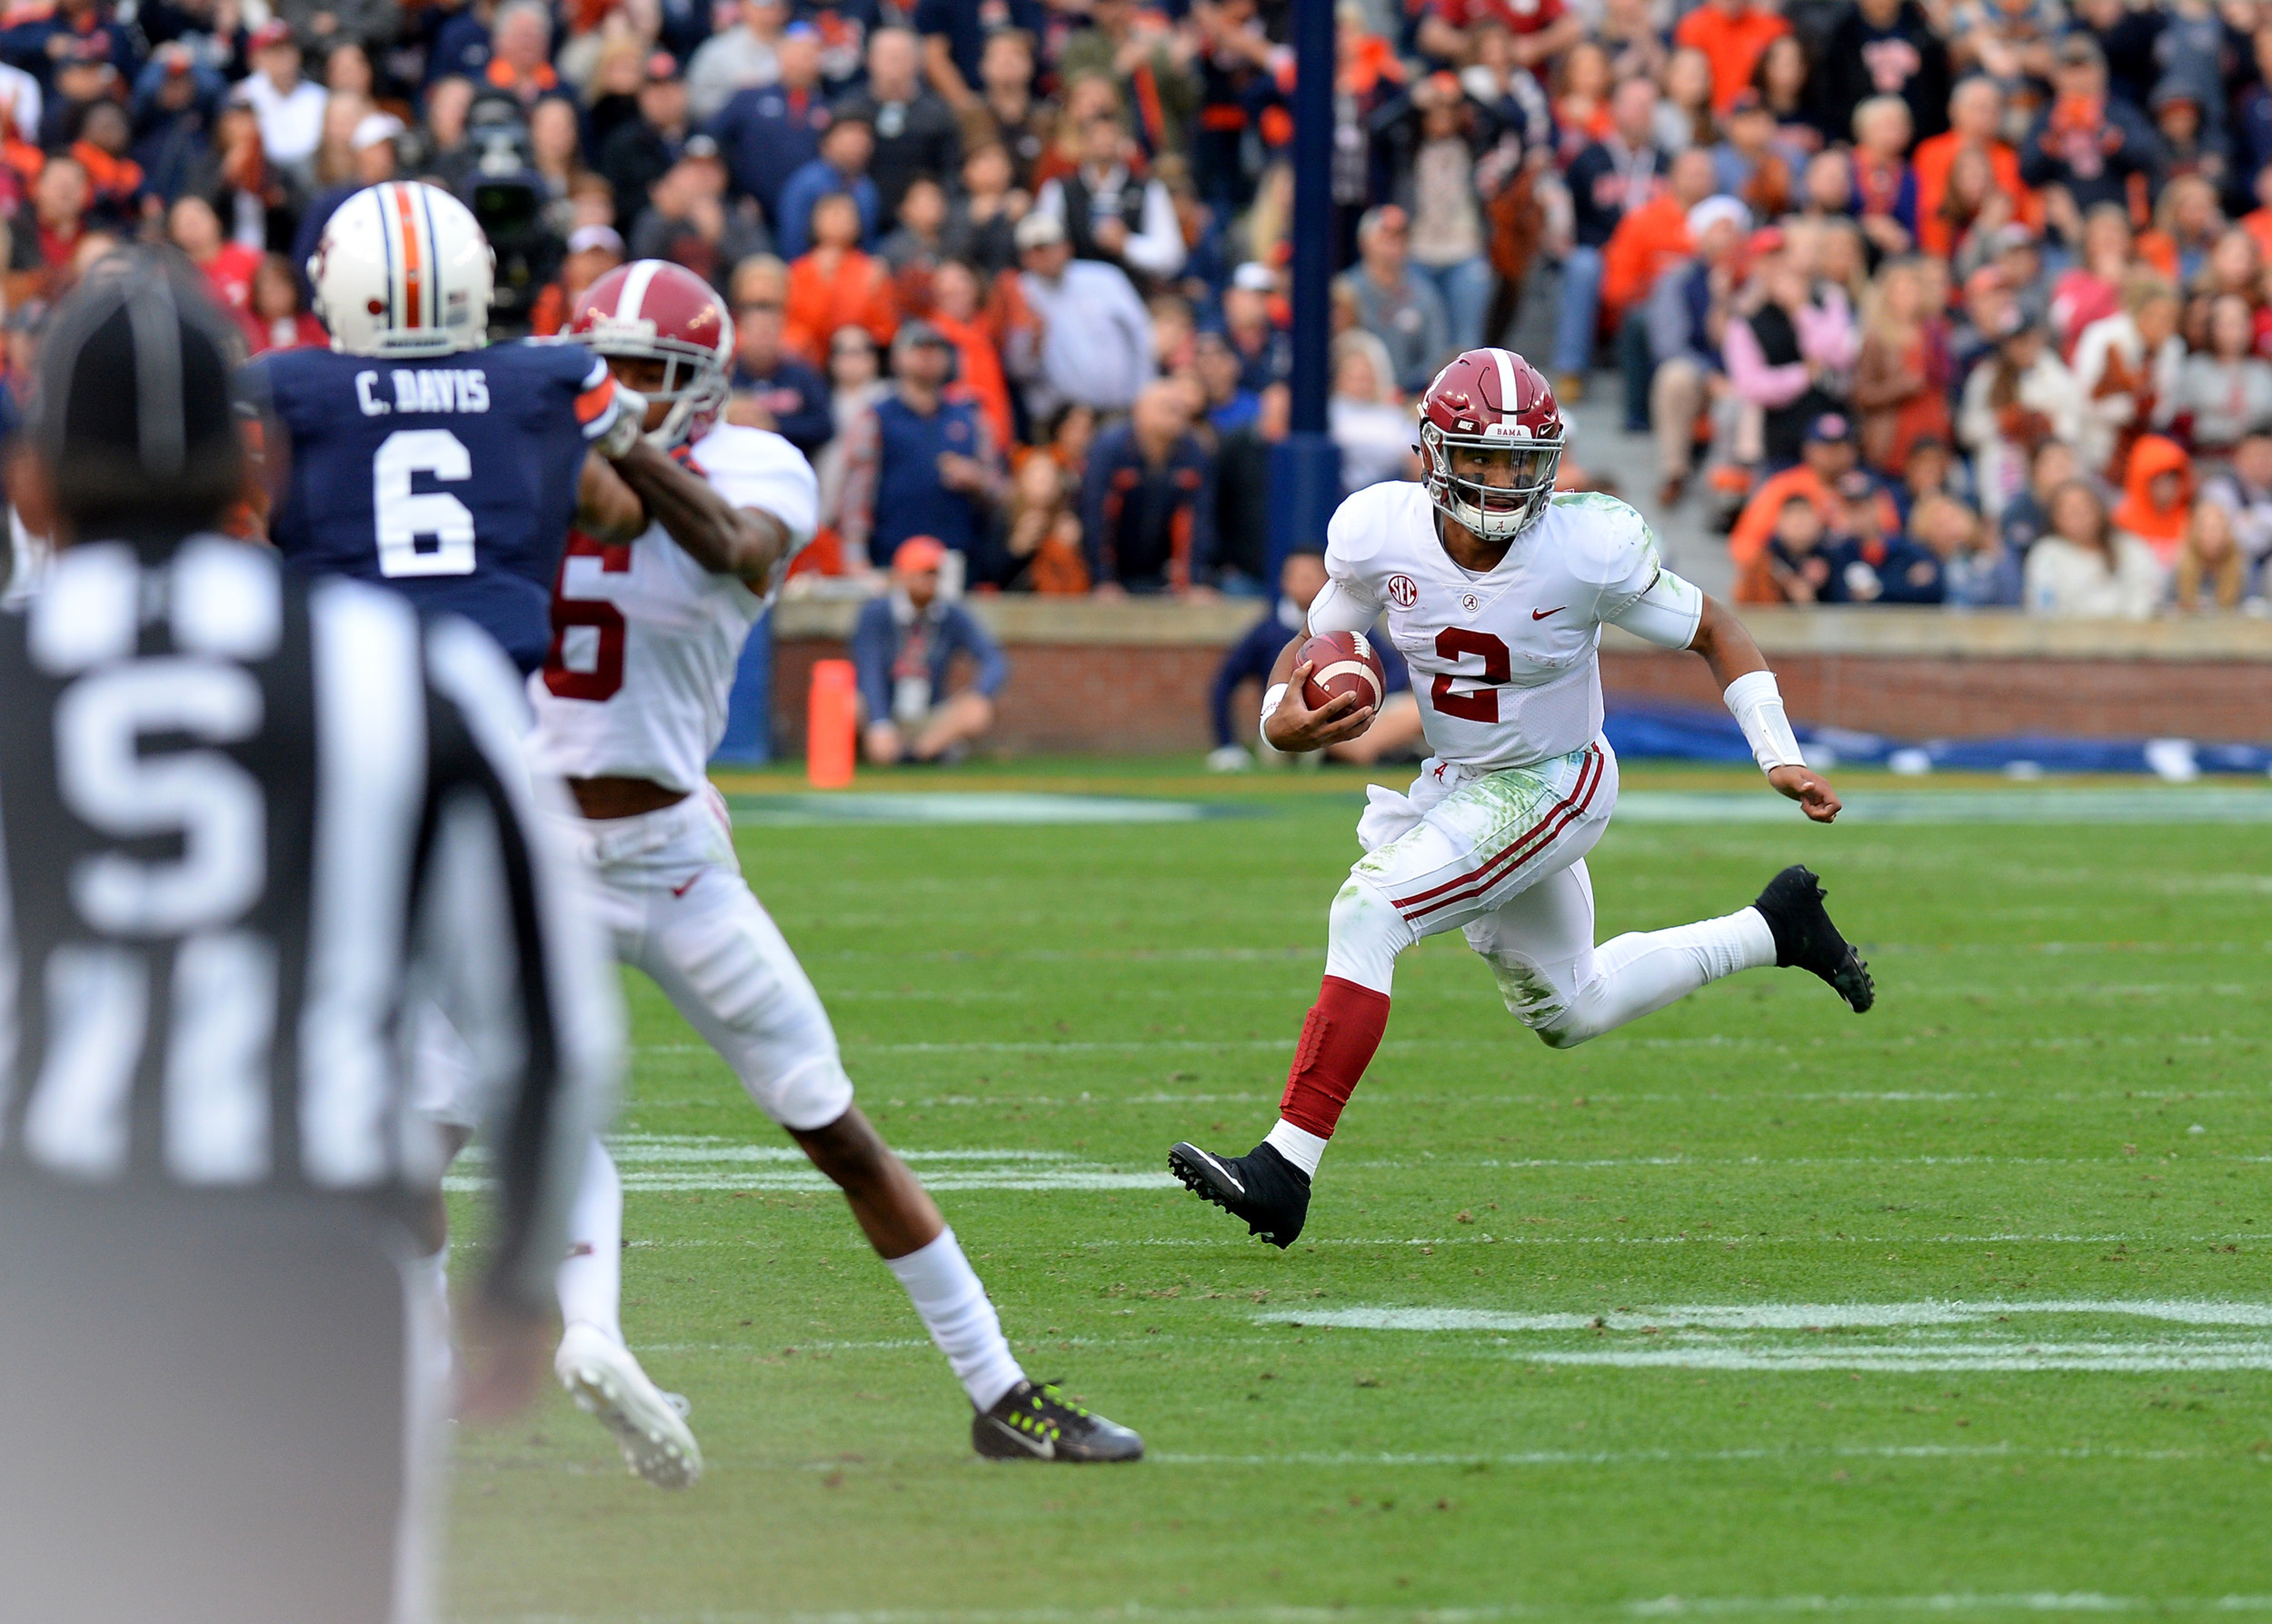 Alabama Crimson Tide quarterback Jalen Hurts (2) with a quarterback keeper in the first half of the NCAA football game between the Alabama Crimson Tide and the Auburn Tigers on Nov. 25, 2017, at Jordan-Hare Stadium in Auburn, Ala. (Photo by Jeff Johnsey)